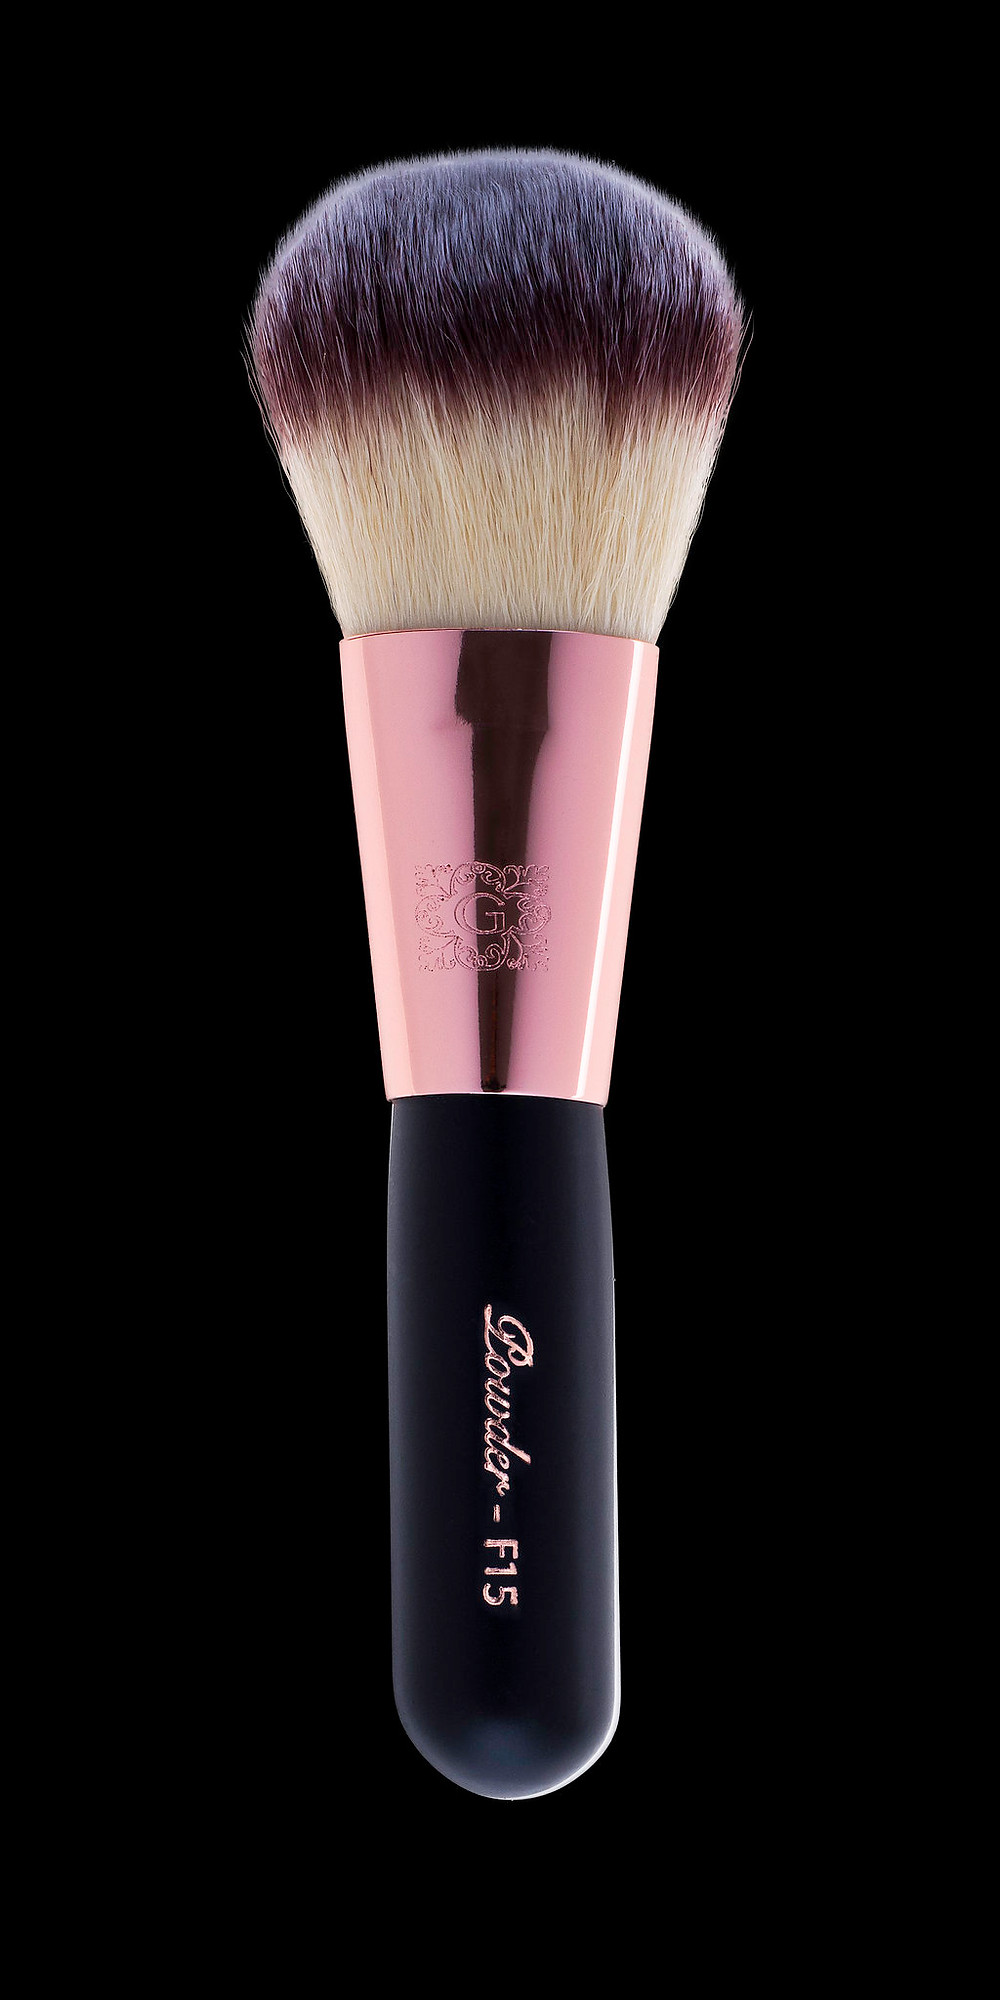 Glamx F15 Powder Brush - $13.95